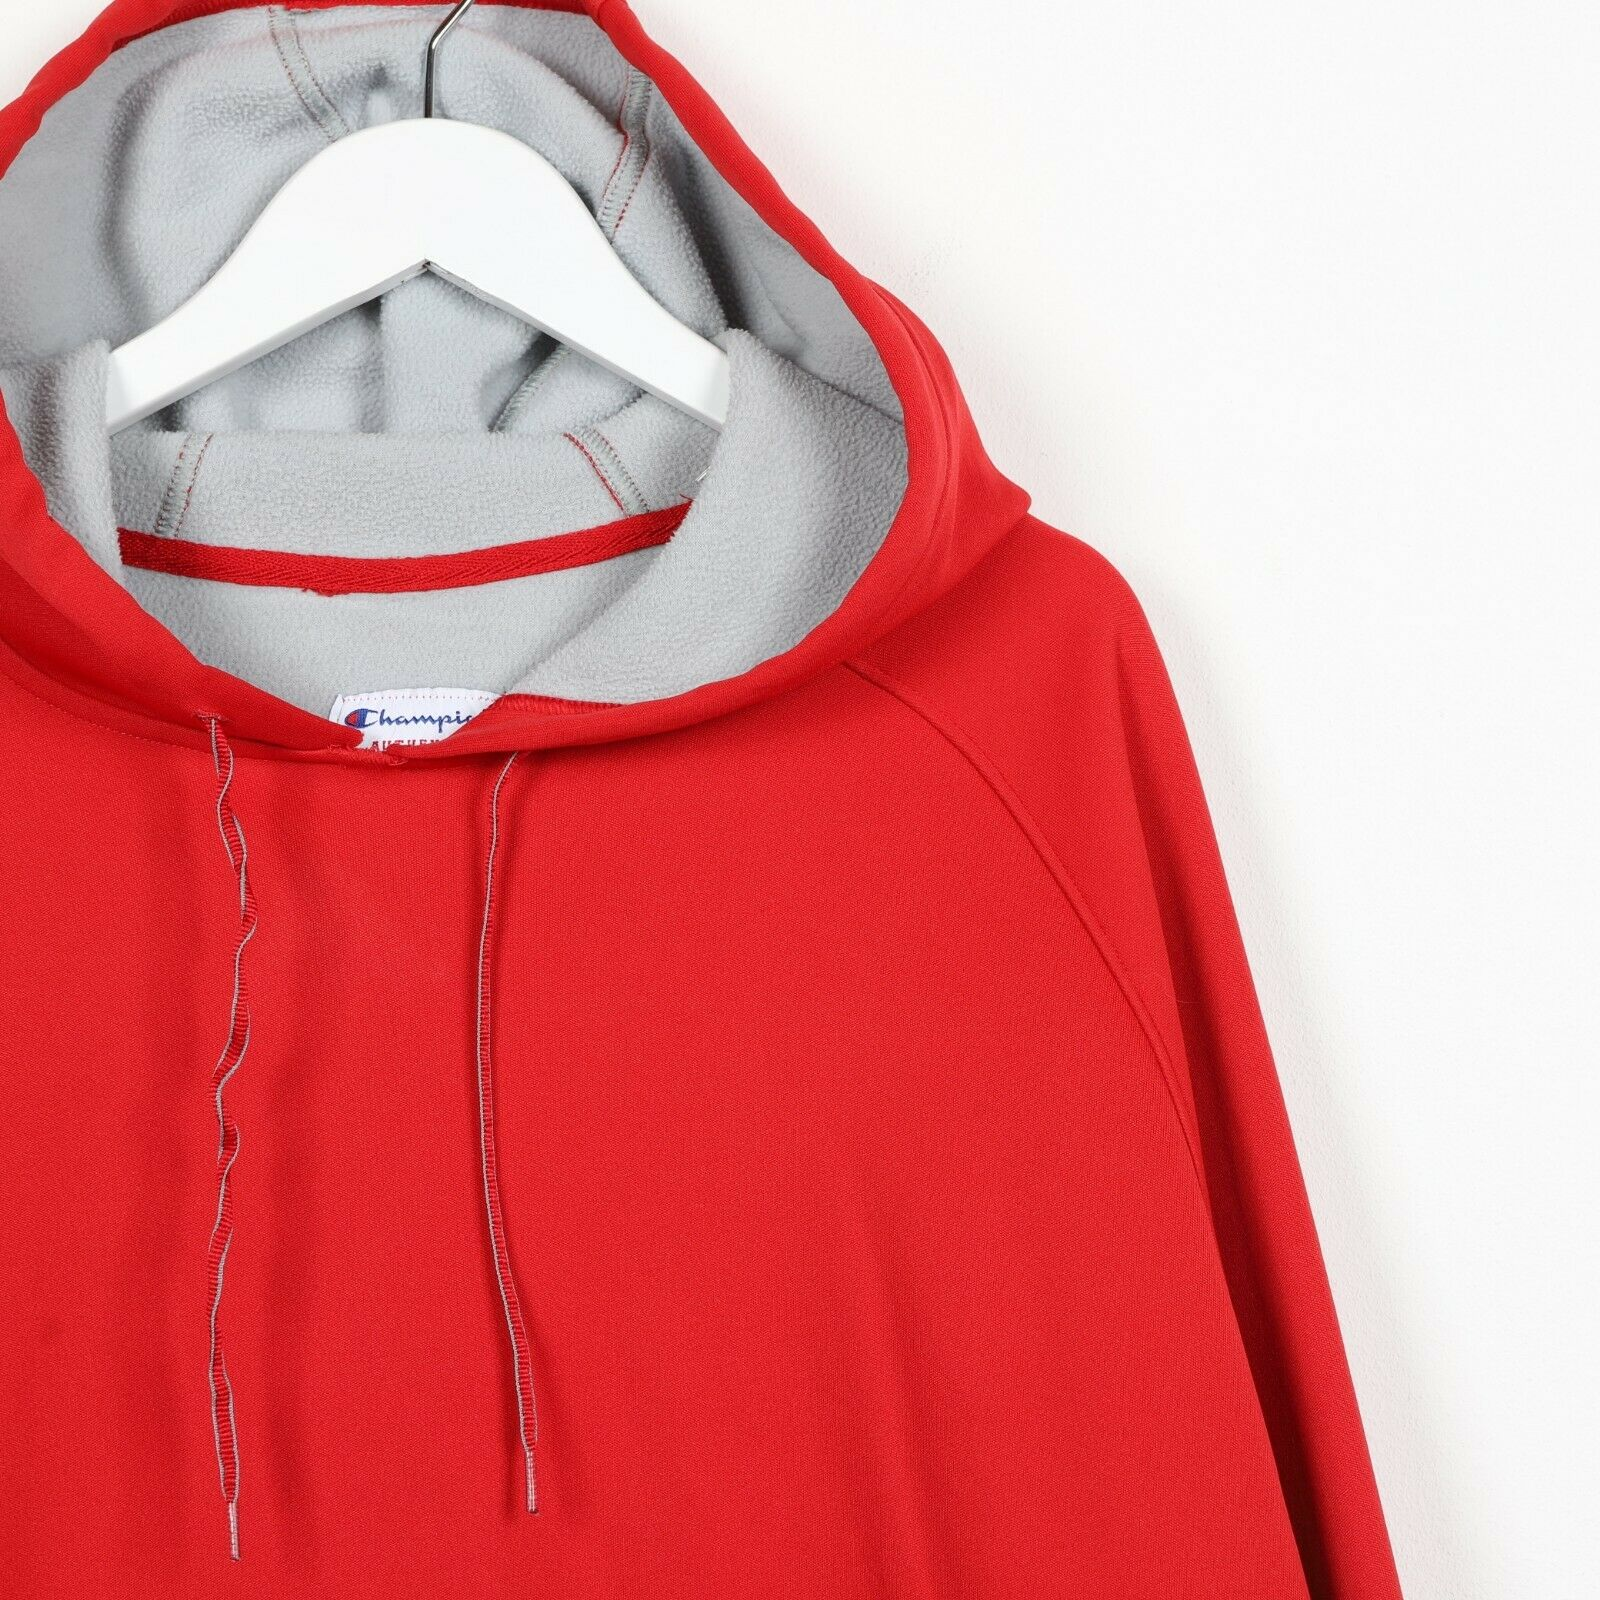 Vintage CHAMPION Sleeve Logo Polyester Hoodie Sweatshirt Red XL